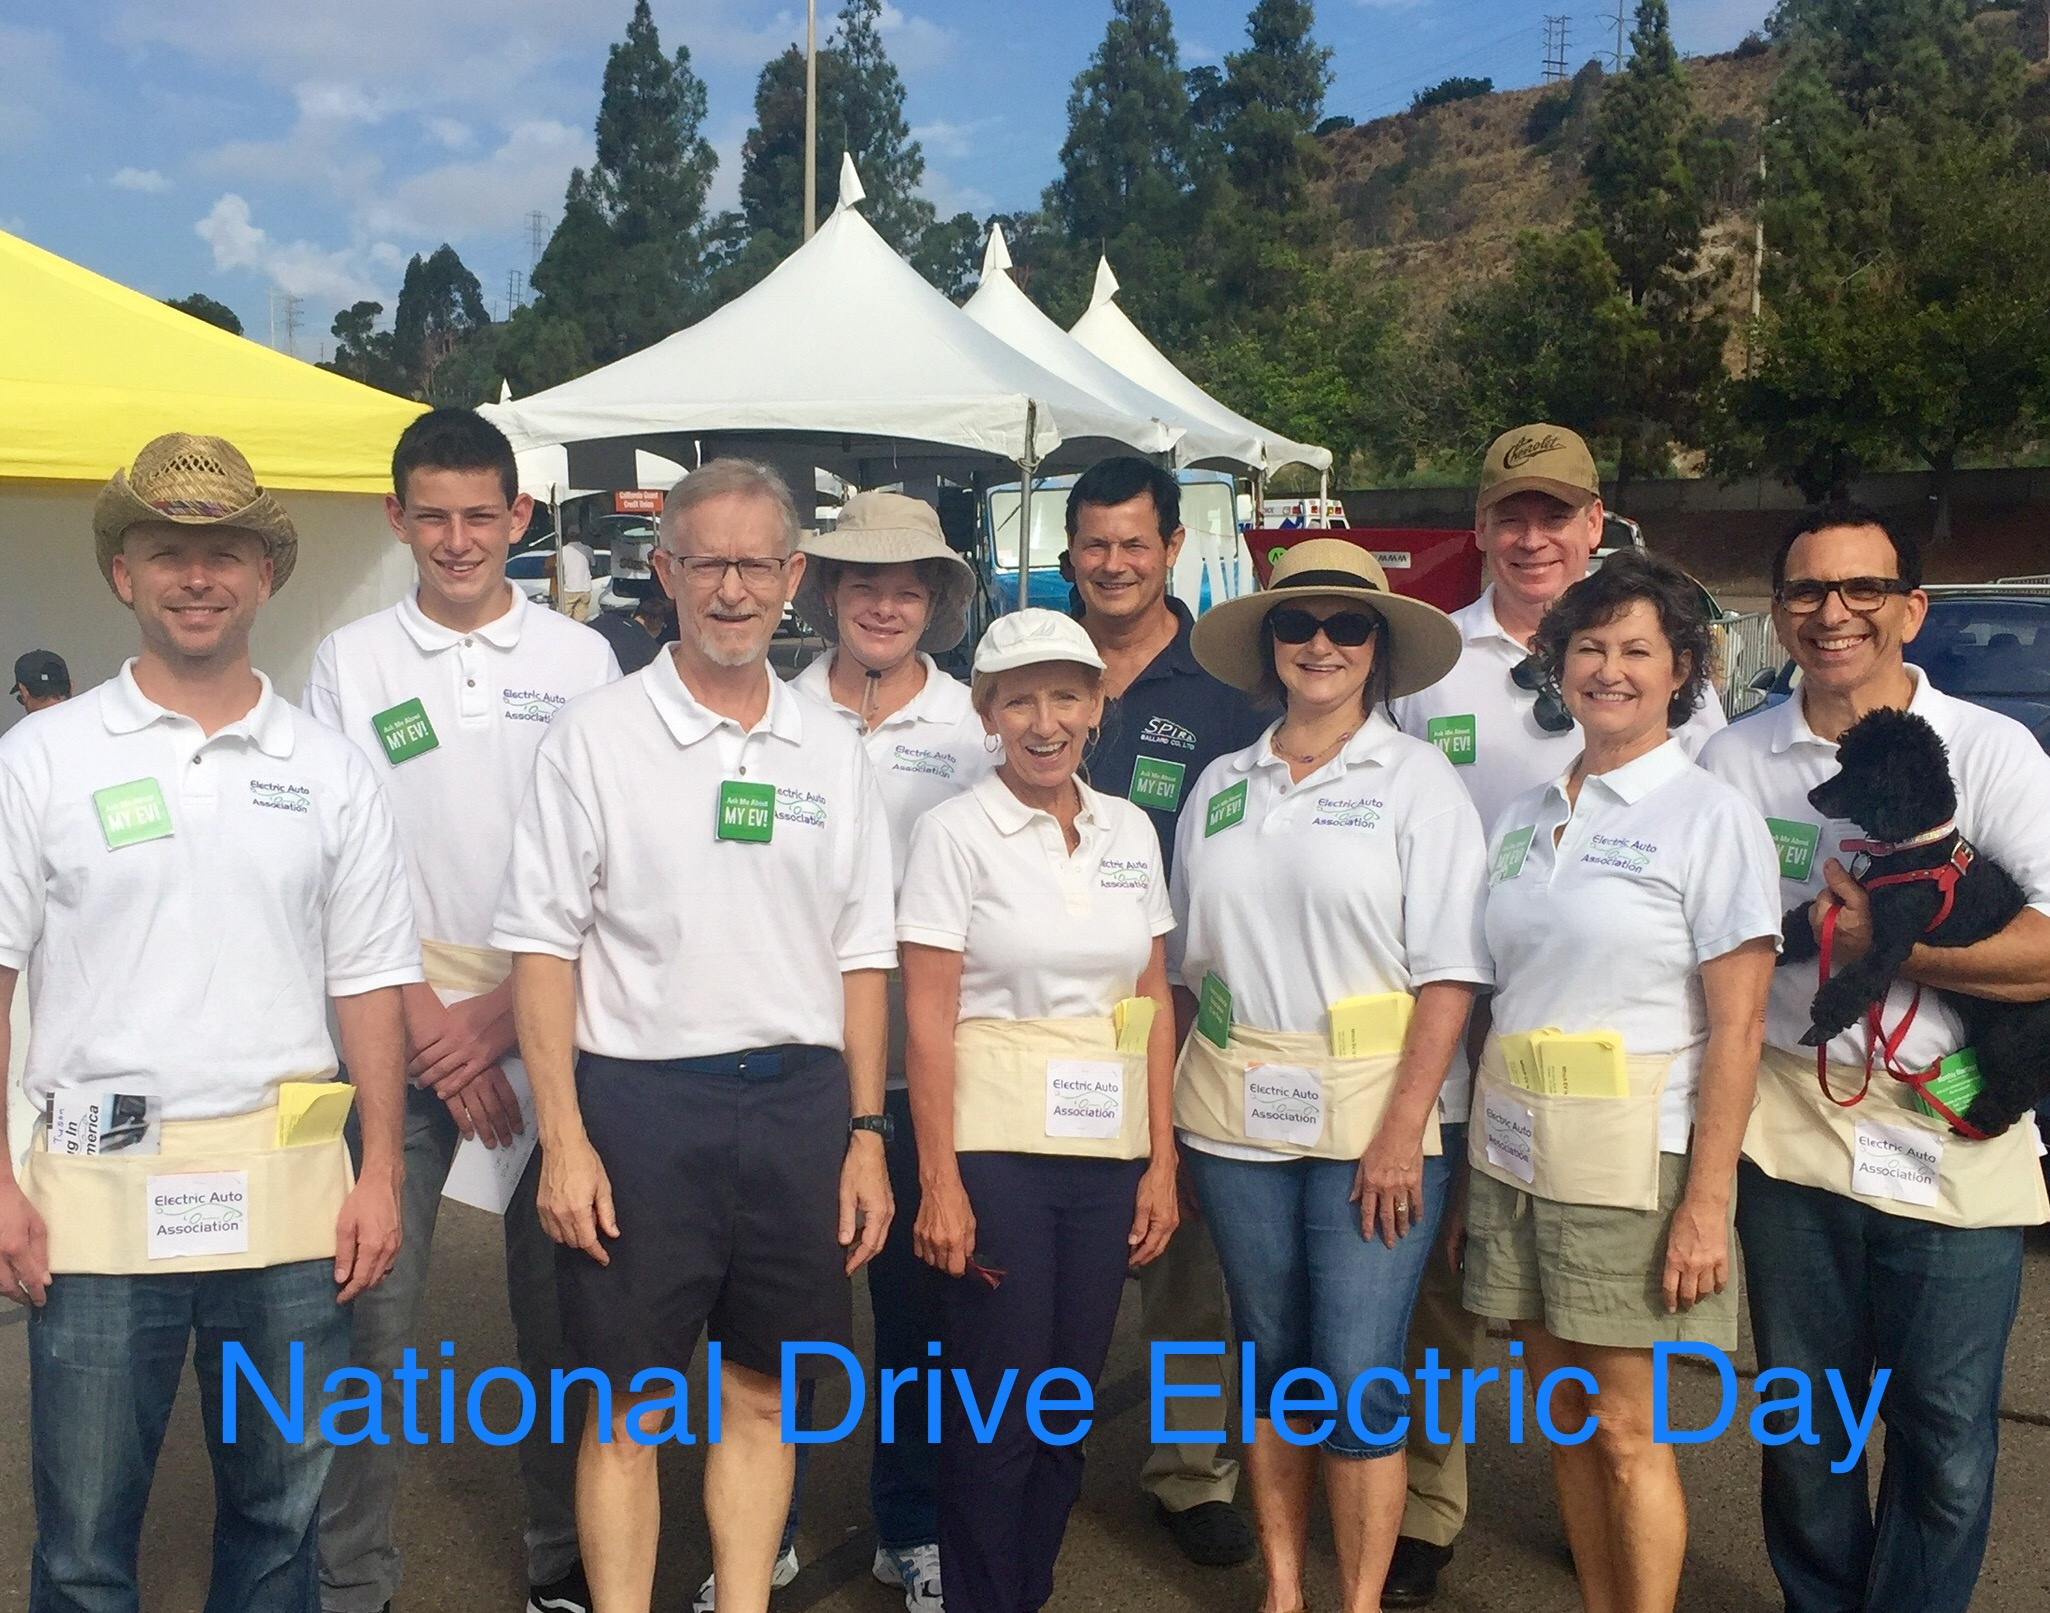 EVAoSD National Drive Electric Day